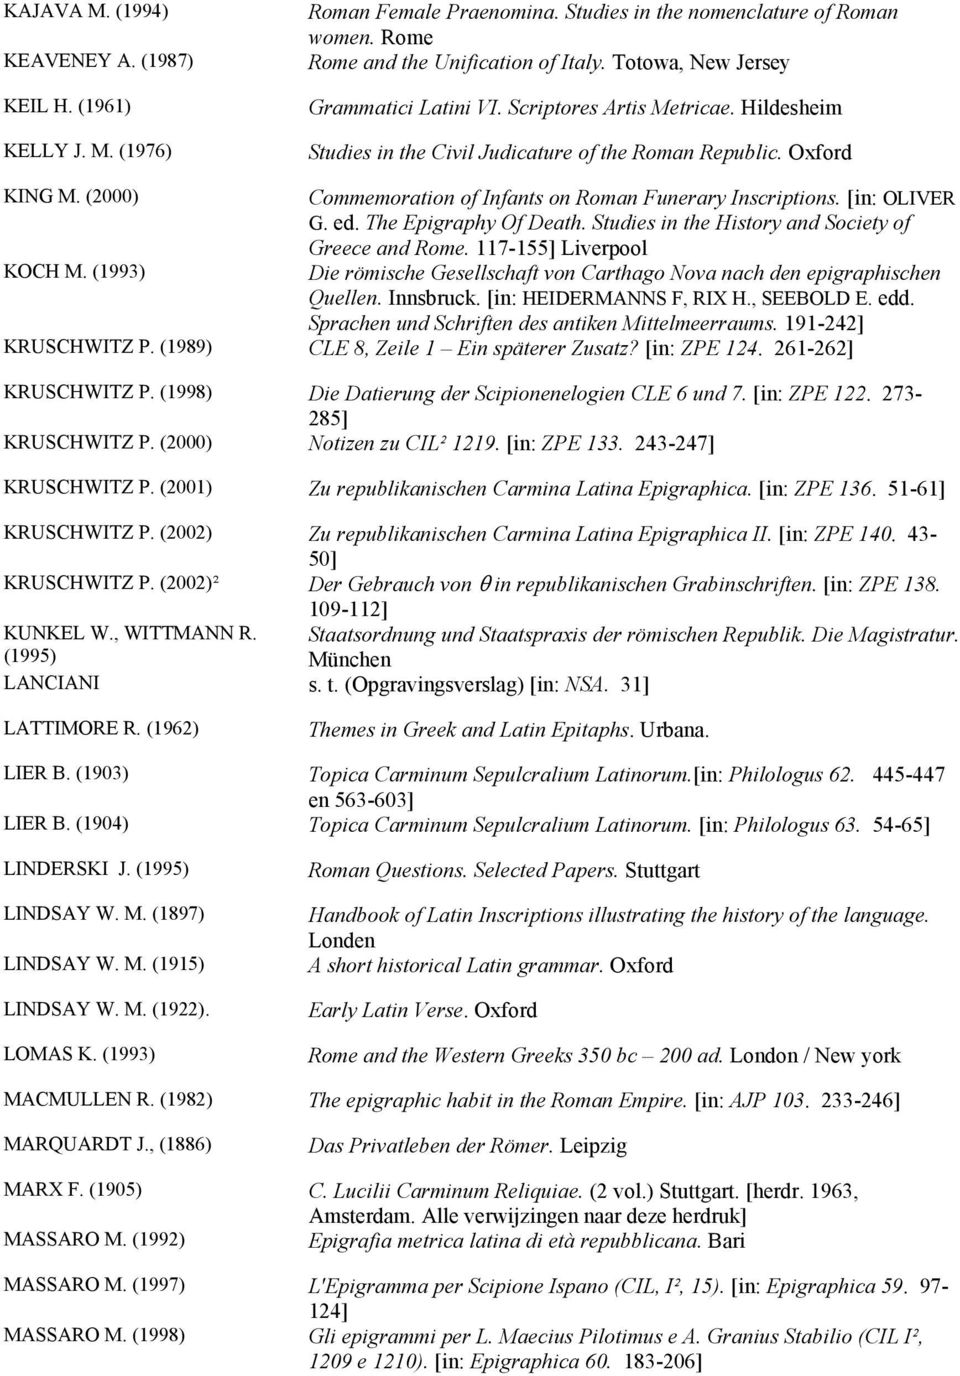 (2000) Commemoration of Infants on Roman Funerary Inscriptions. [in: OLIVER G. ed. The Epigraphy Of Death. Studies in the History and Society of Greece and Rome. 117-155] Liverpool KOCH M.